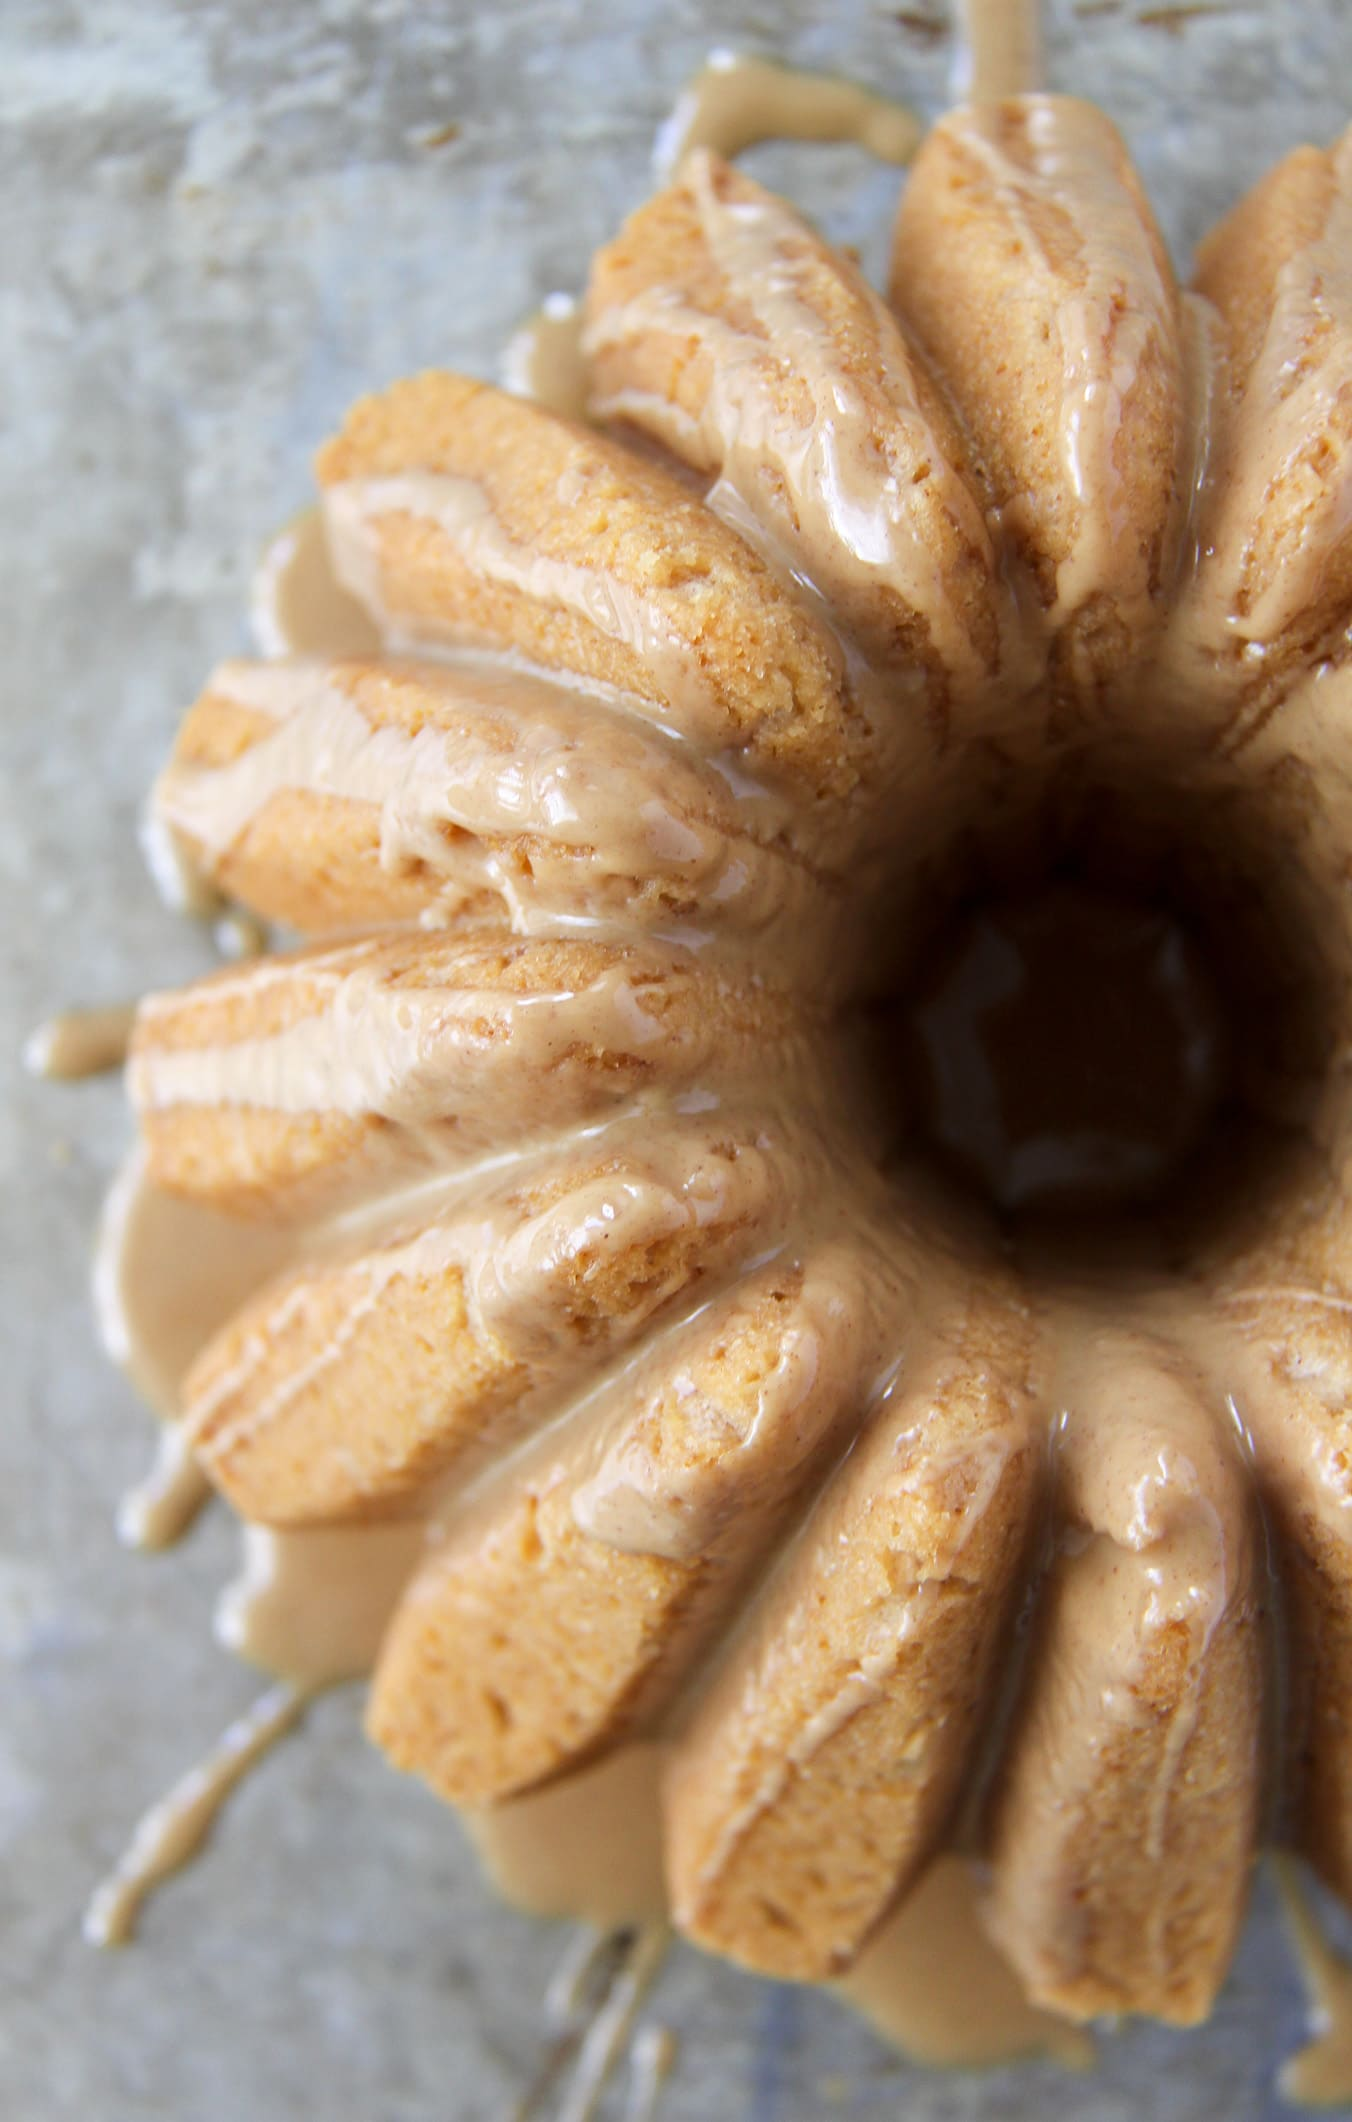 A close up view of a Peanut Butter Bundt Cake with Peanut Butter Drizzle